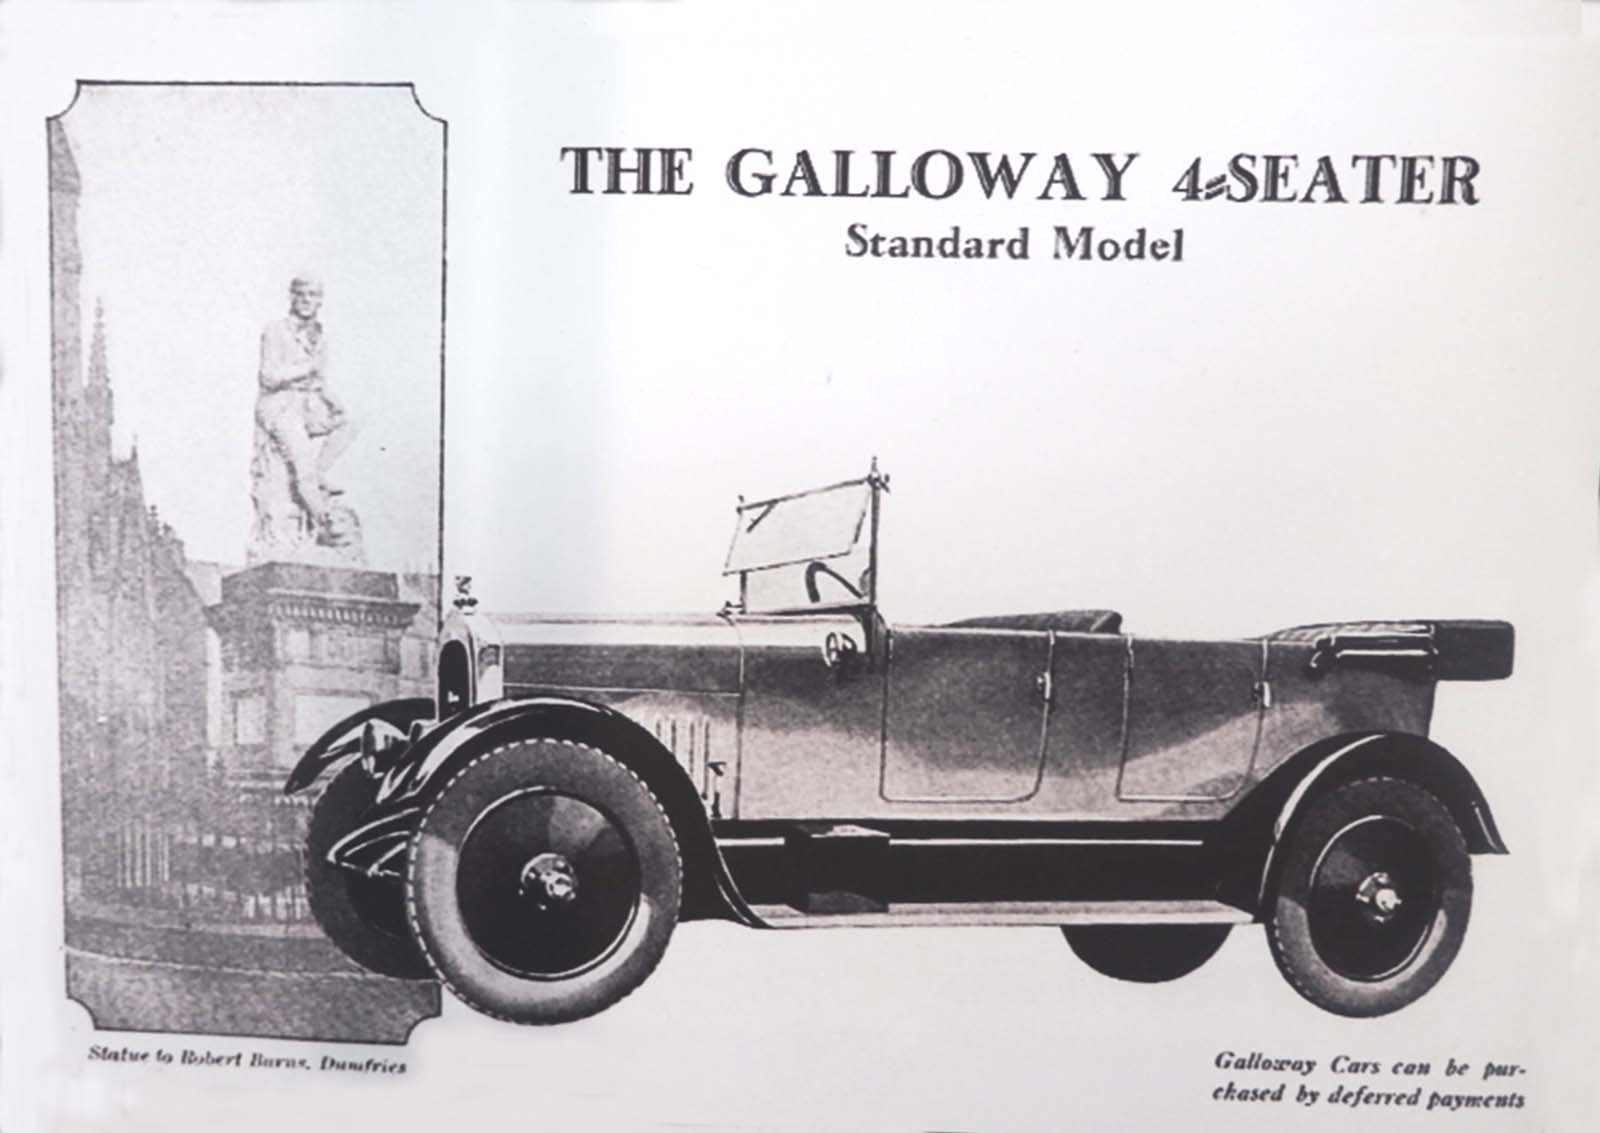 black and white advertisemtn for a Galloway car with a picture of a four seater car next to a photo of the statue of Robert Burns